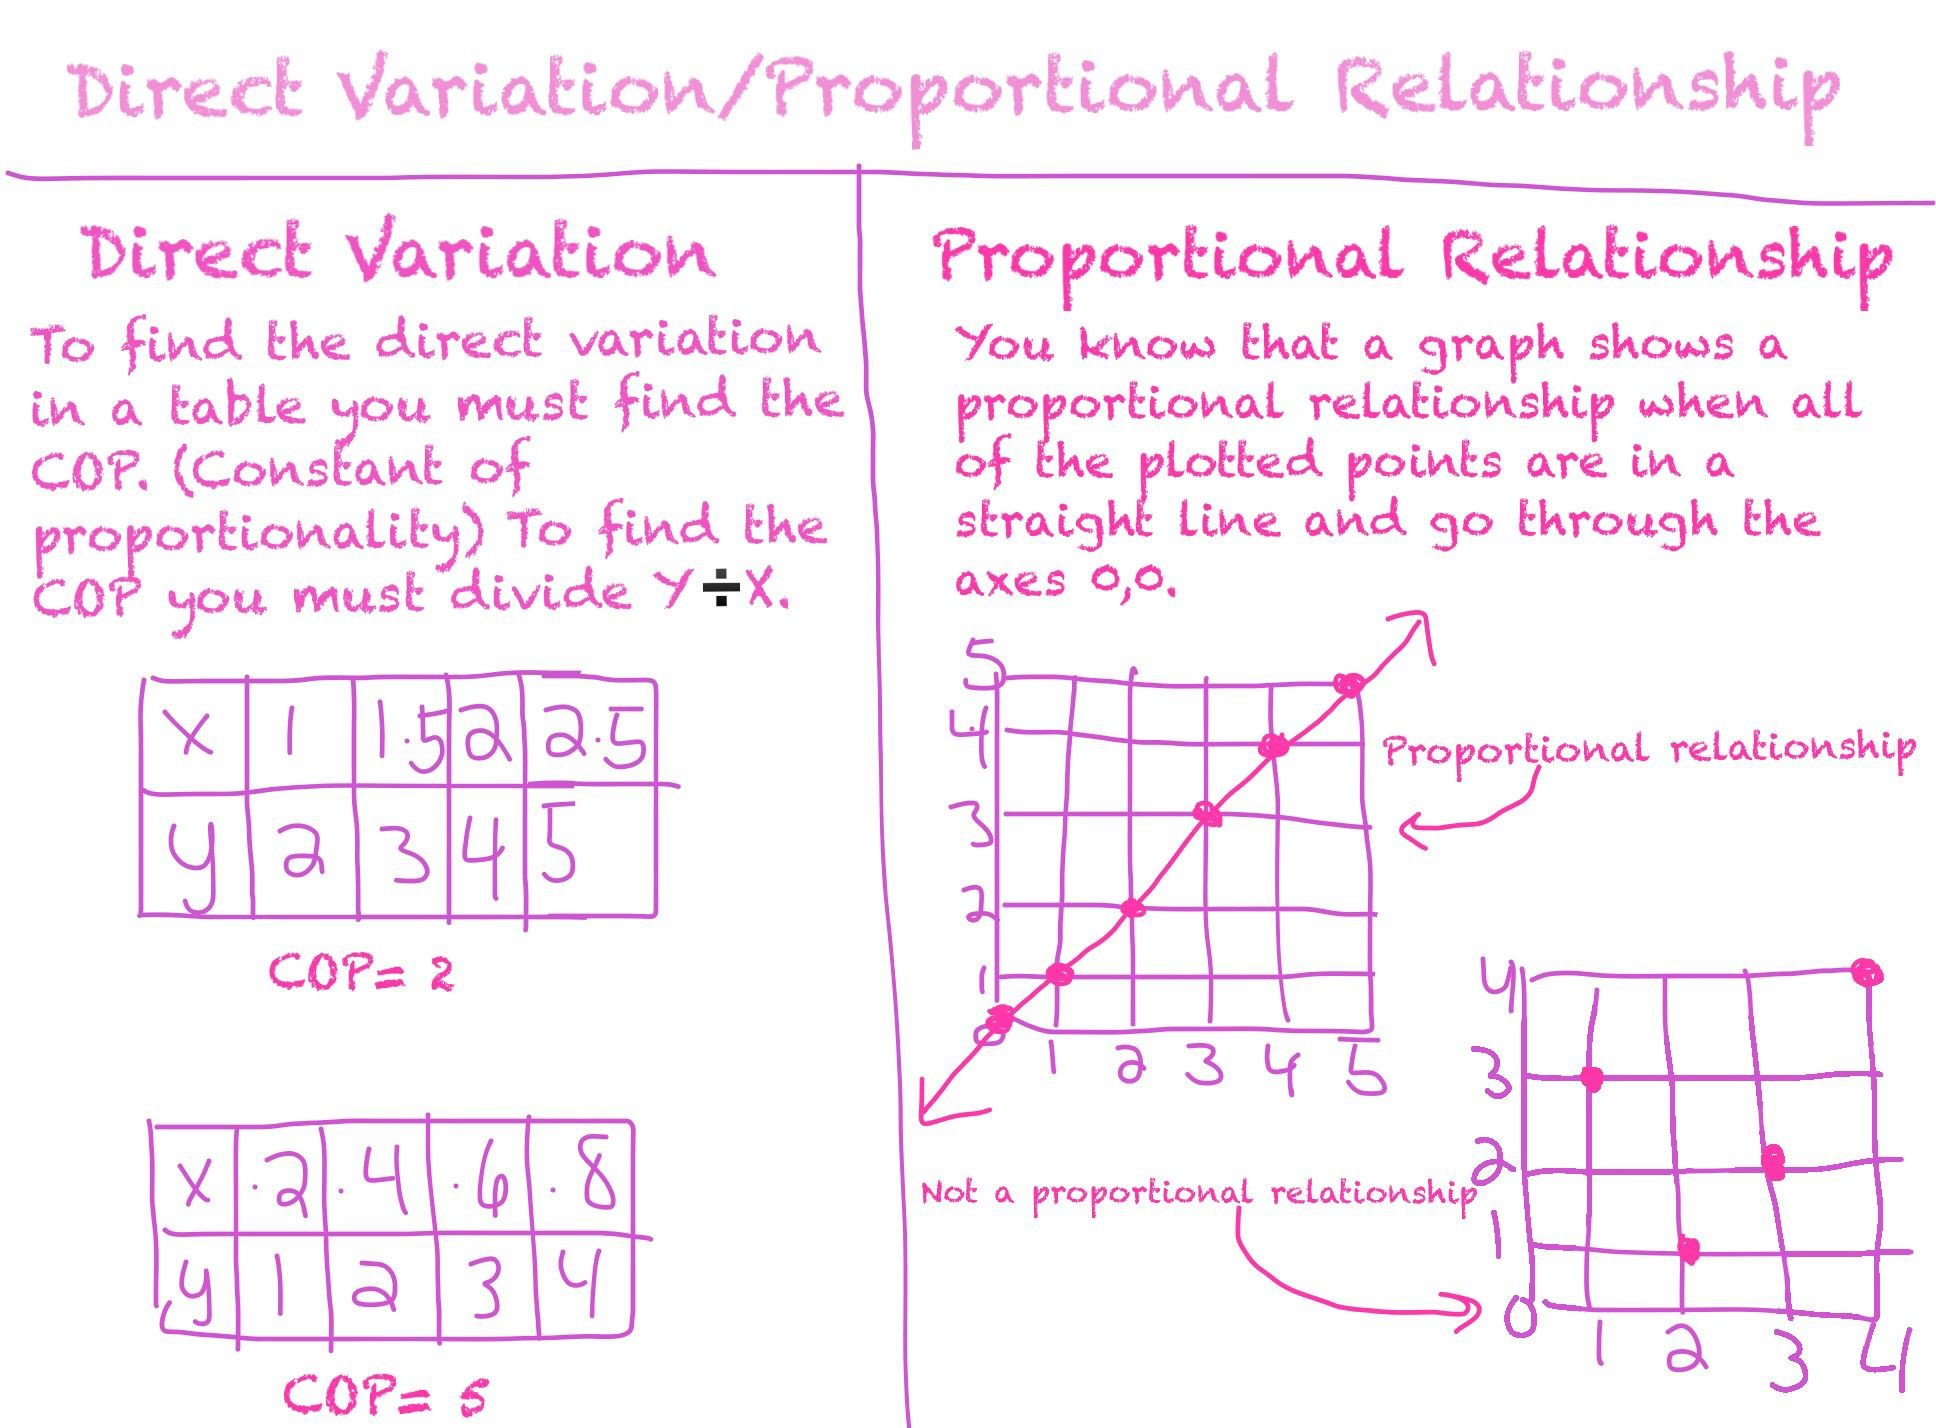 Direct Variation Table Worksheet Direct Variation Proportional Relationship